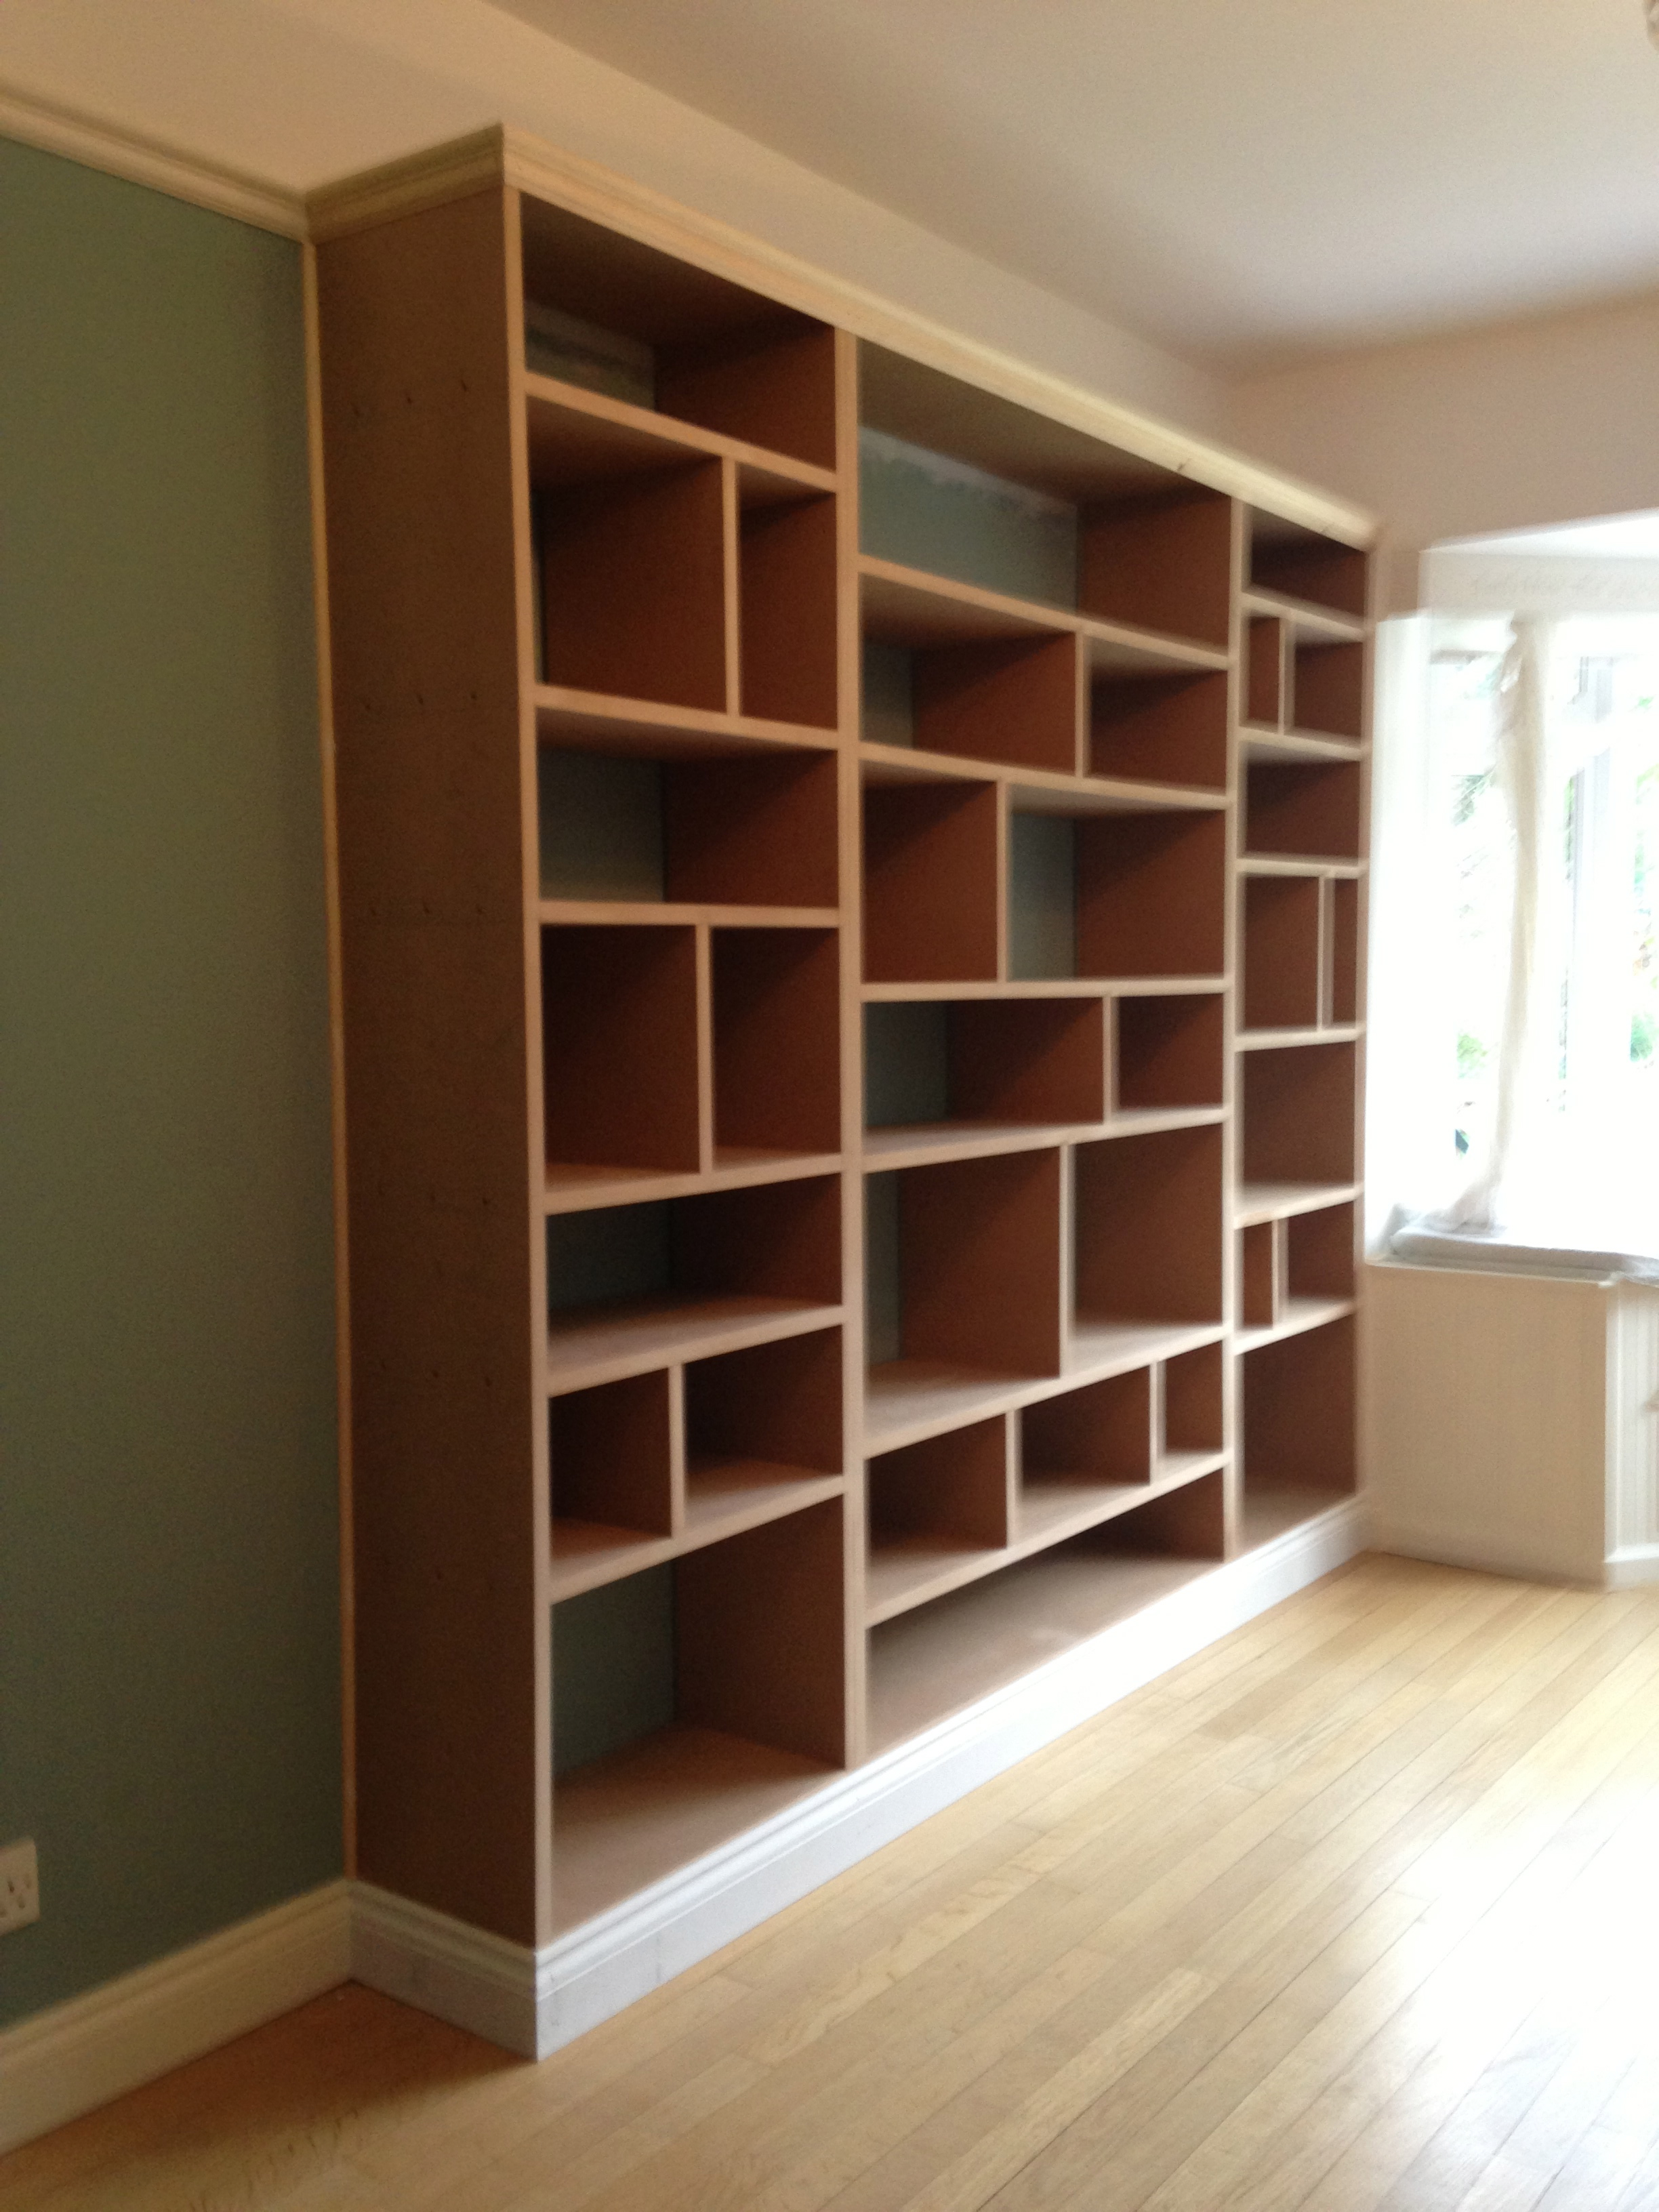 Bedroom Shelving Fitted Shelving Cupboards And Flooring P D Carpentry